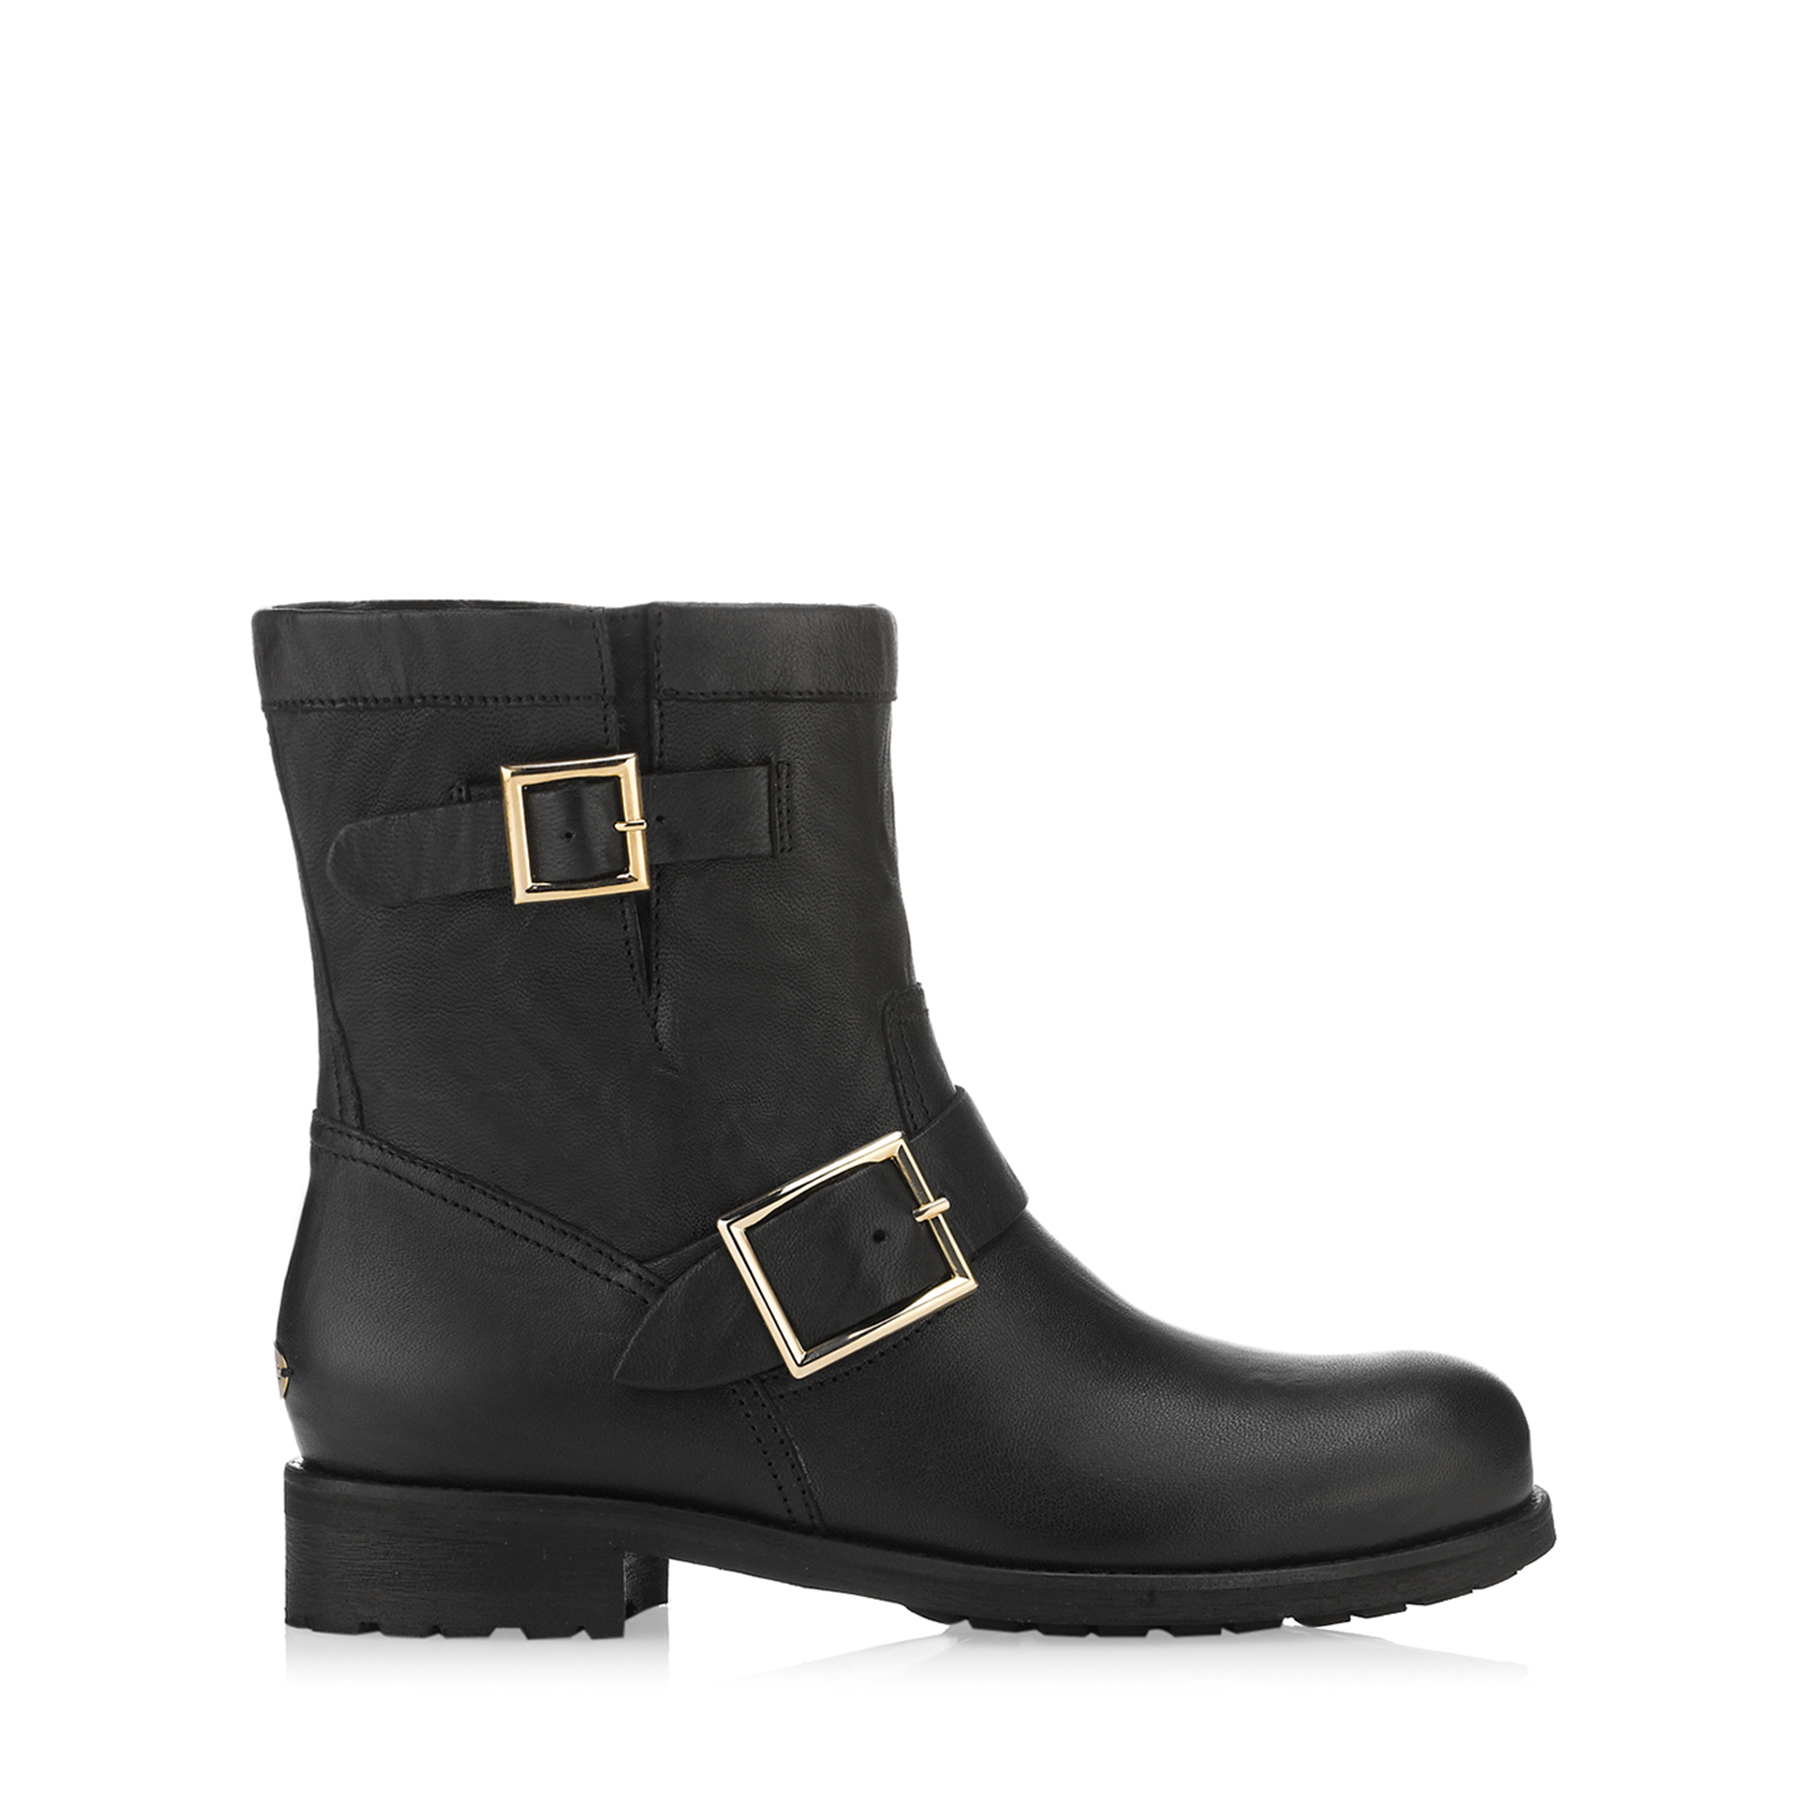 YOUTH - LINED Black Biker Leather Biker Boots with Rabbit Fur by Jimmy Choo